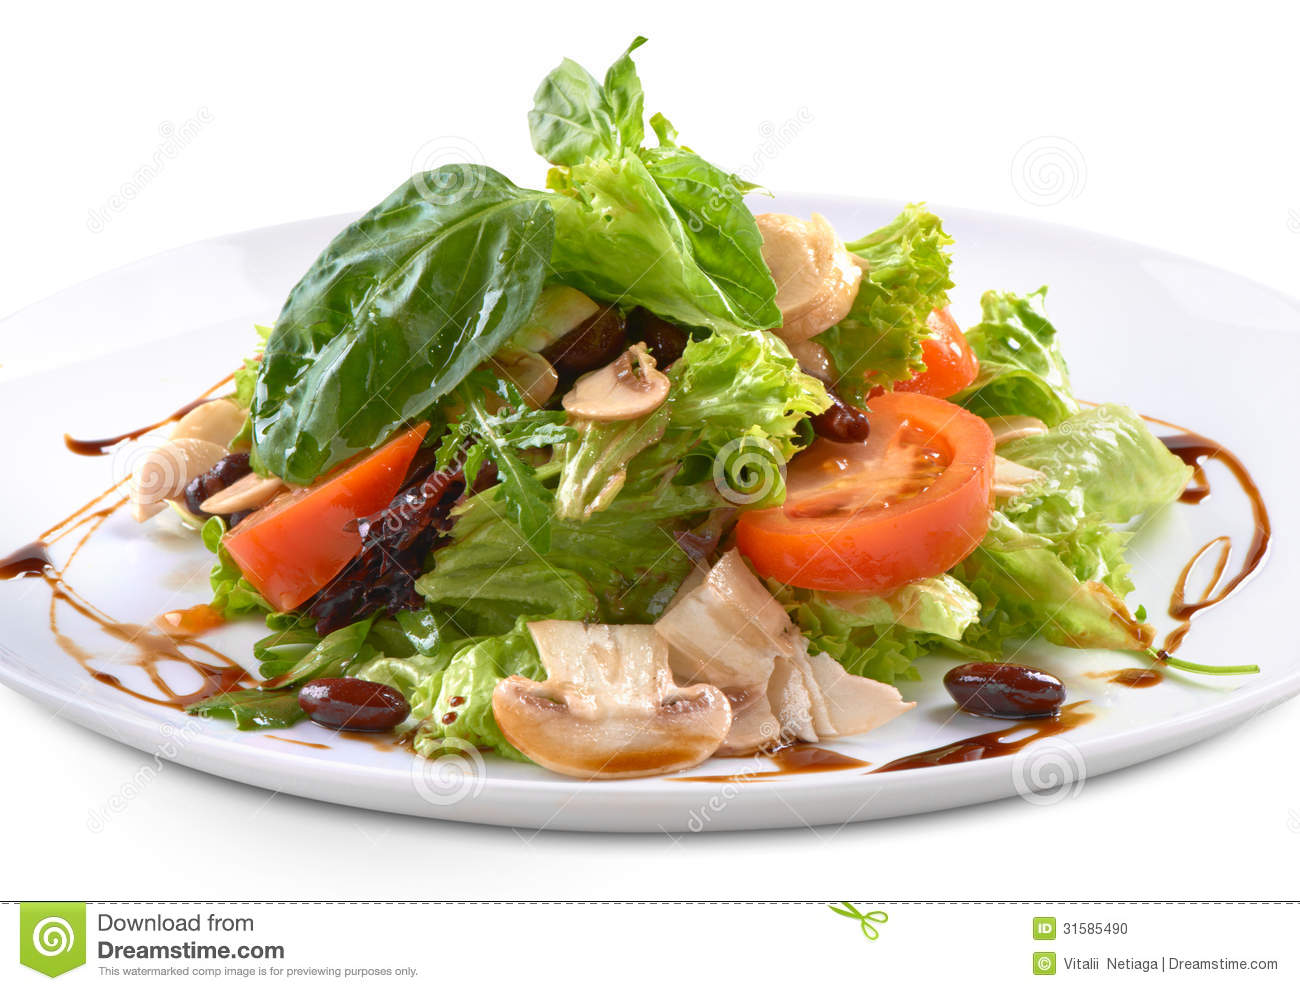 Fresh salad with mushrooms and lettuce.